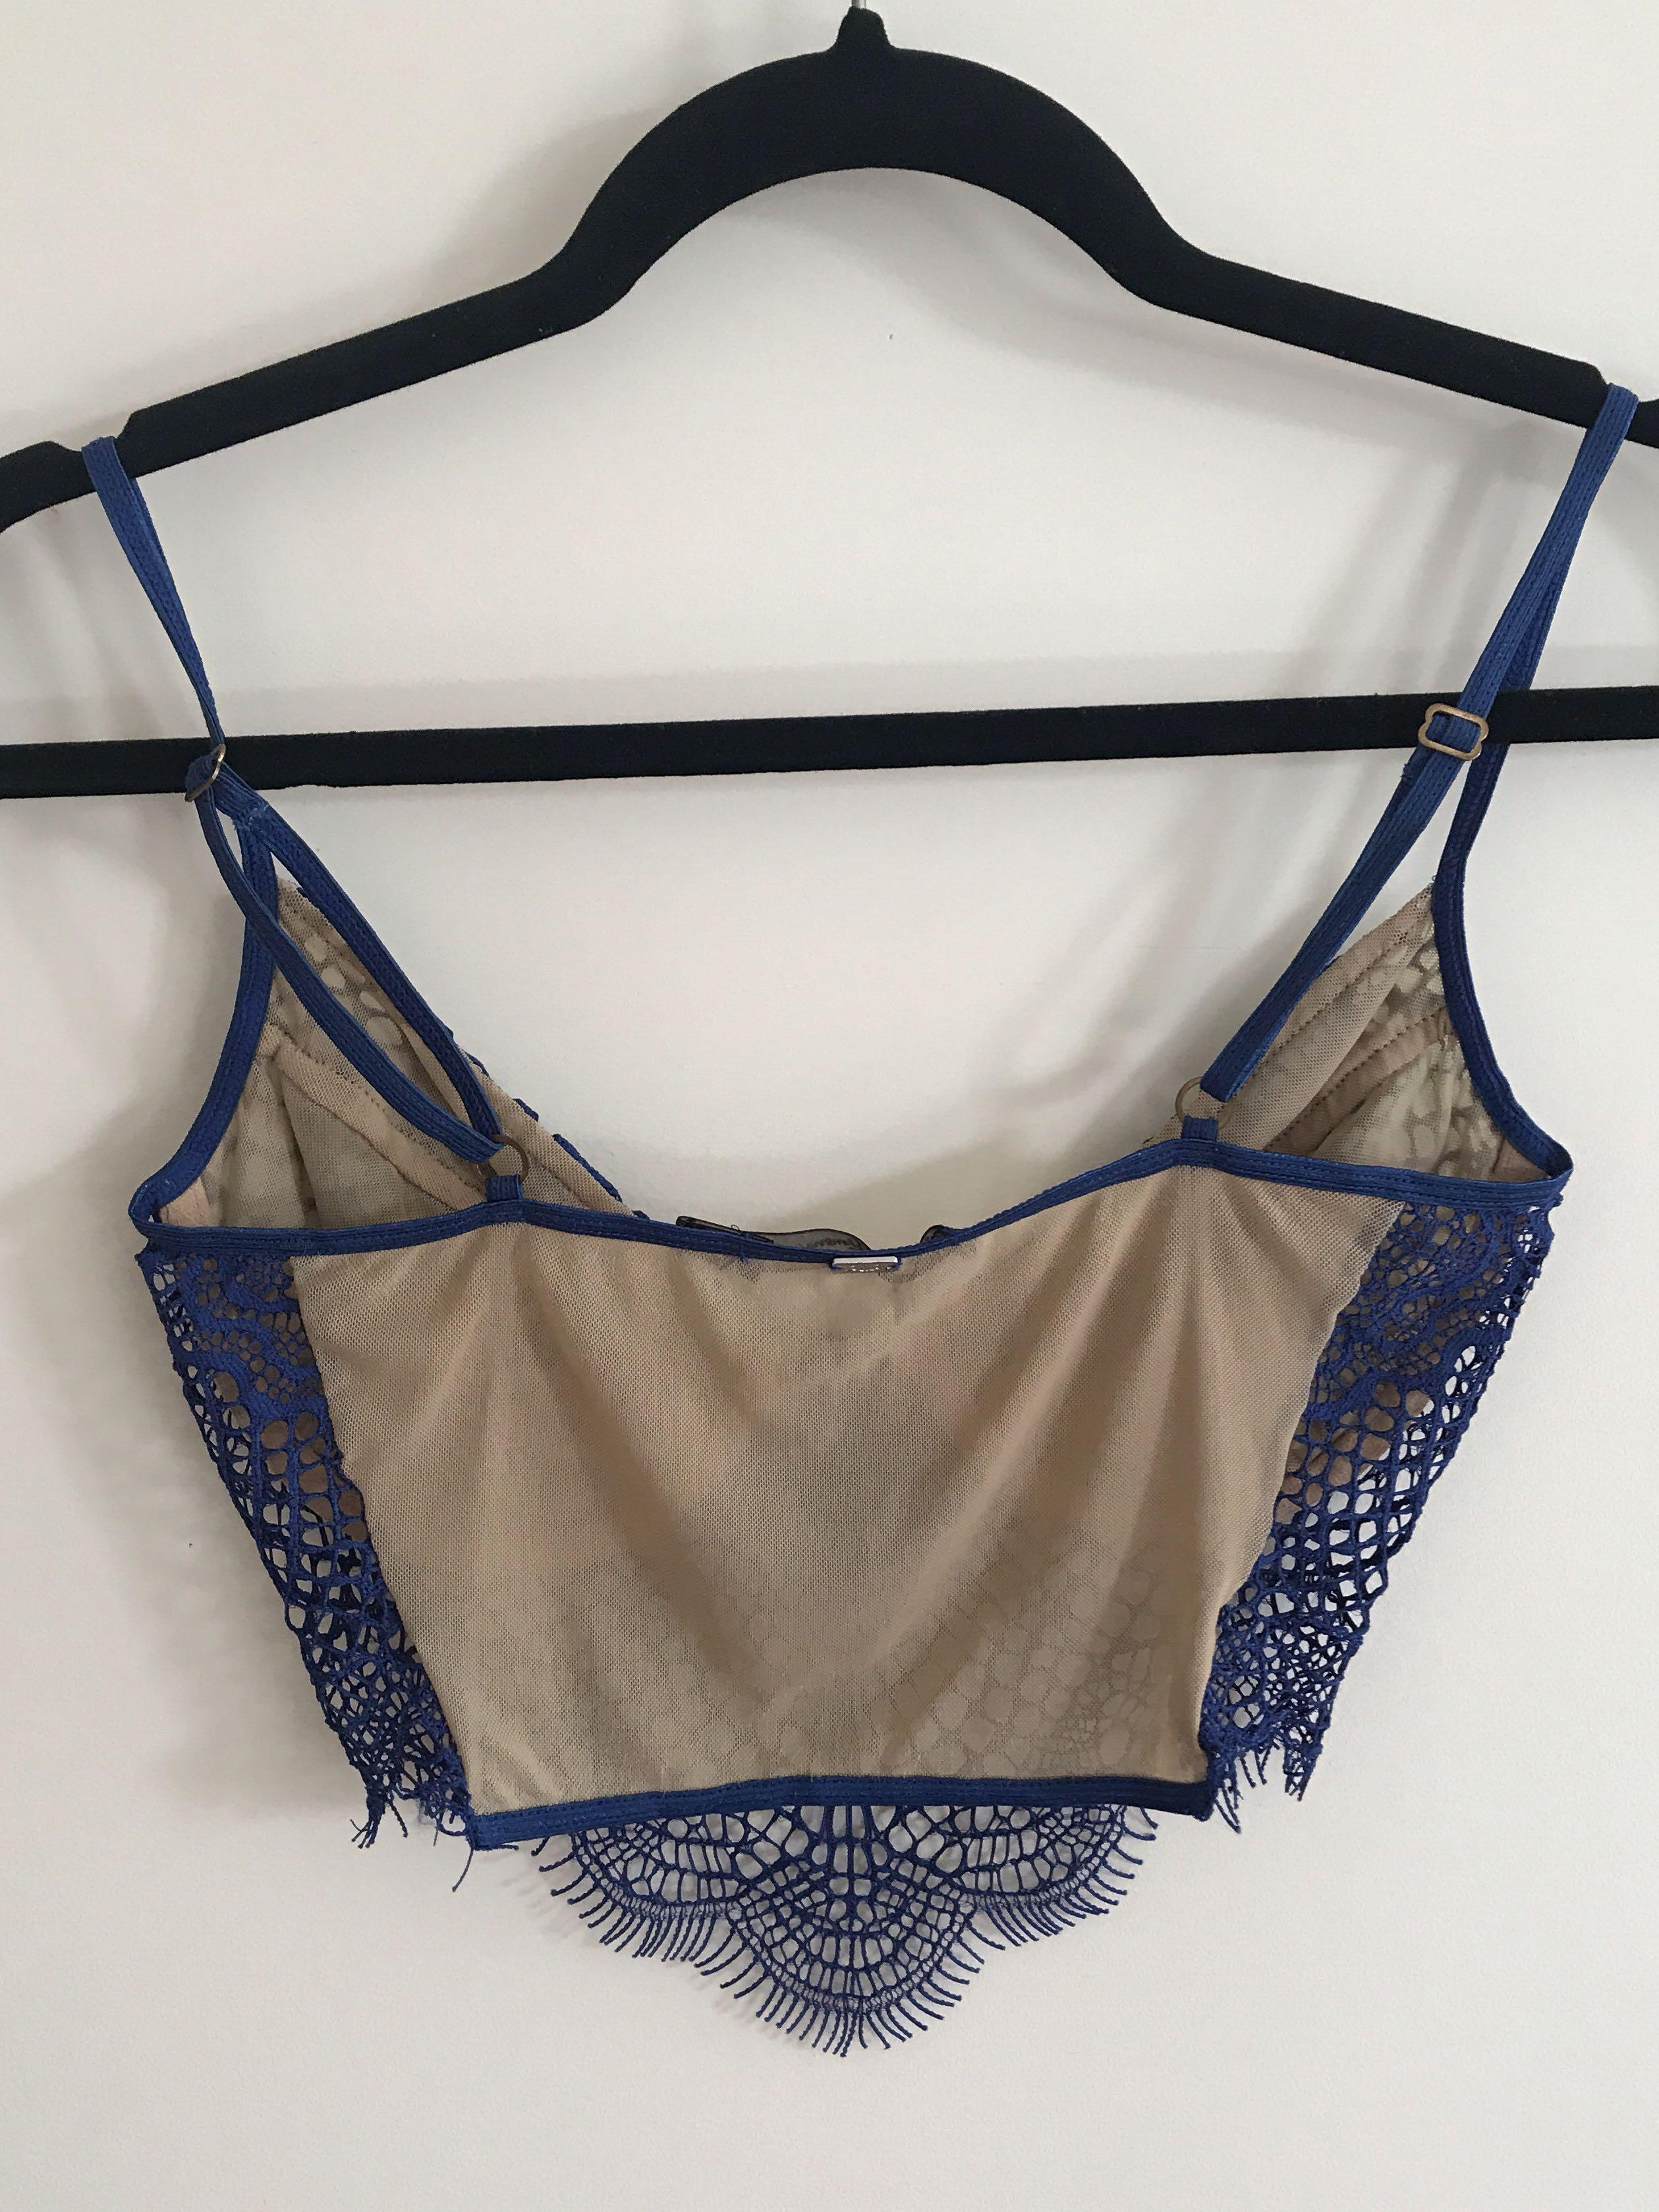 For Love and Lemons Bat Your Lashes Bra - Blue Lace